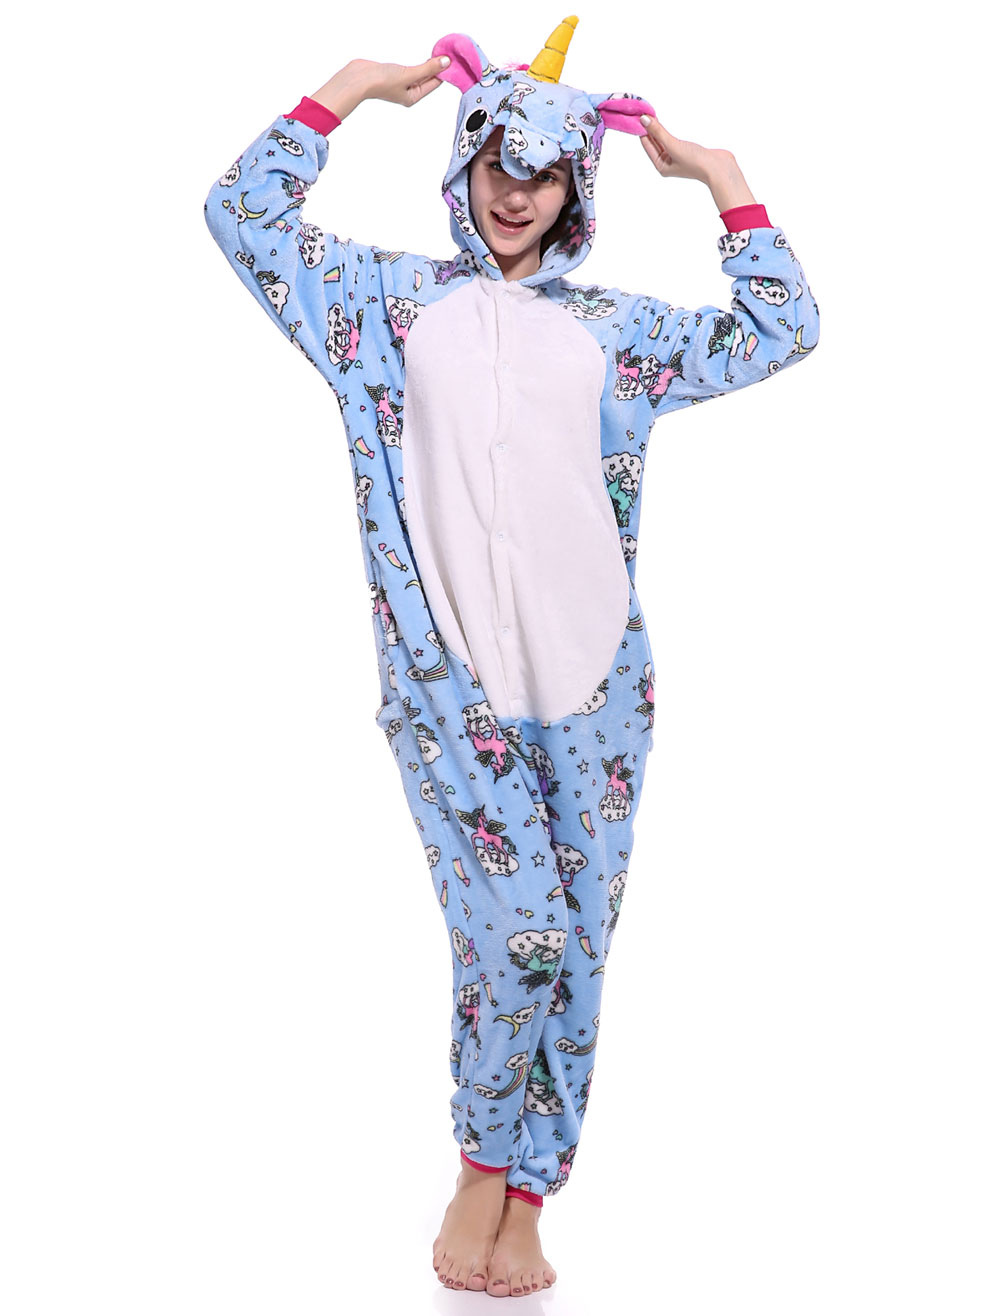 4360cf9b3 ... Unicorn Onesie Kigurumi Pajamas Pegasus Flannel Unisex Adults Jumpsuits-No.7.  12. 40%OFF. Color:Light Sky Blue